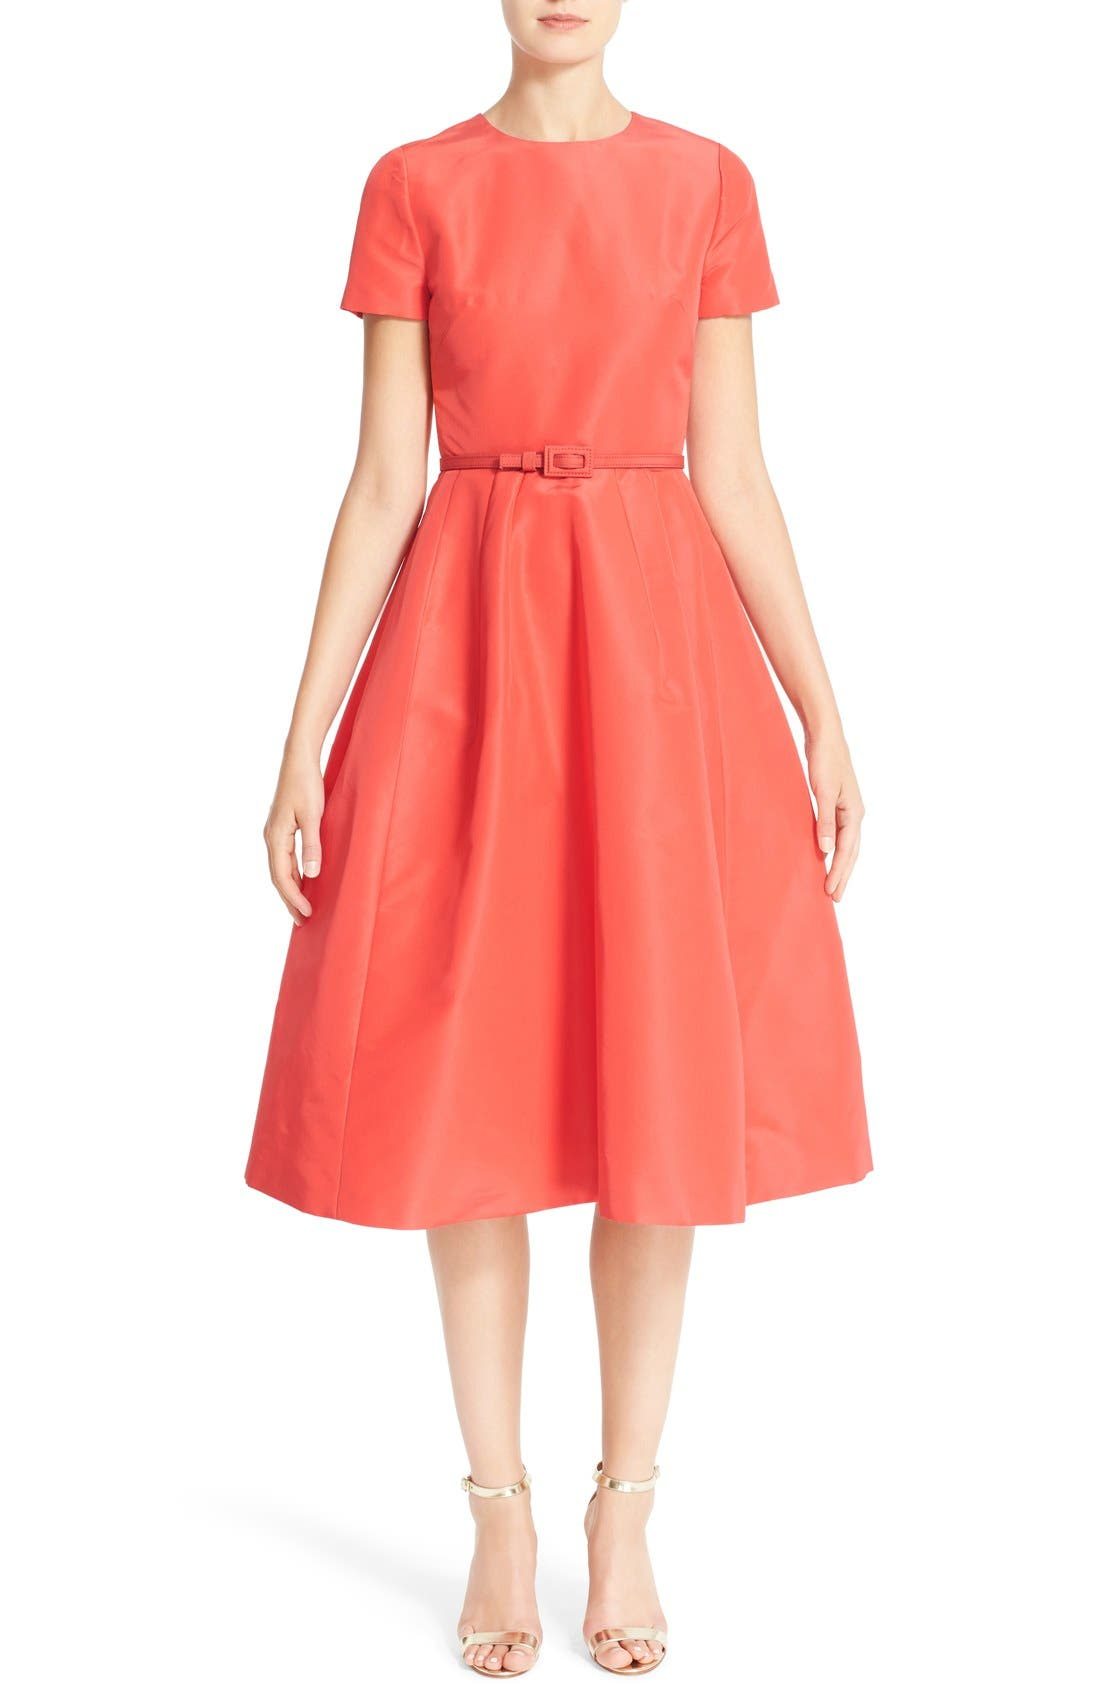 CAROLINA HERRERA Belted Silk Faille A-Line Dress